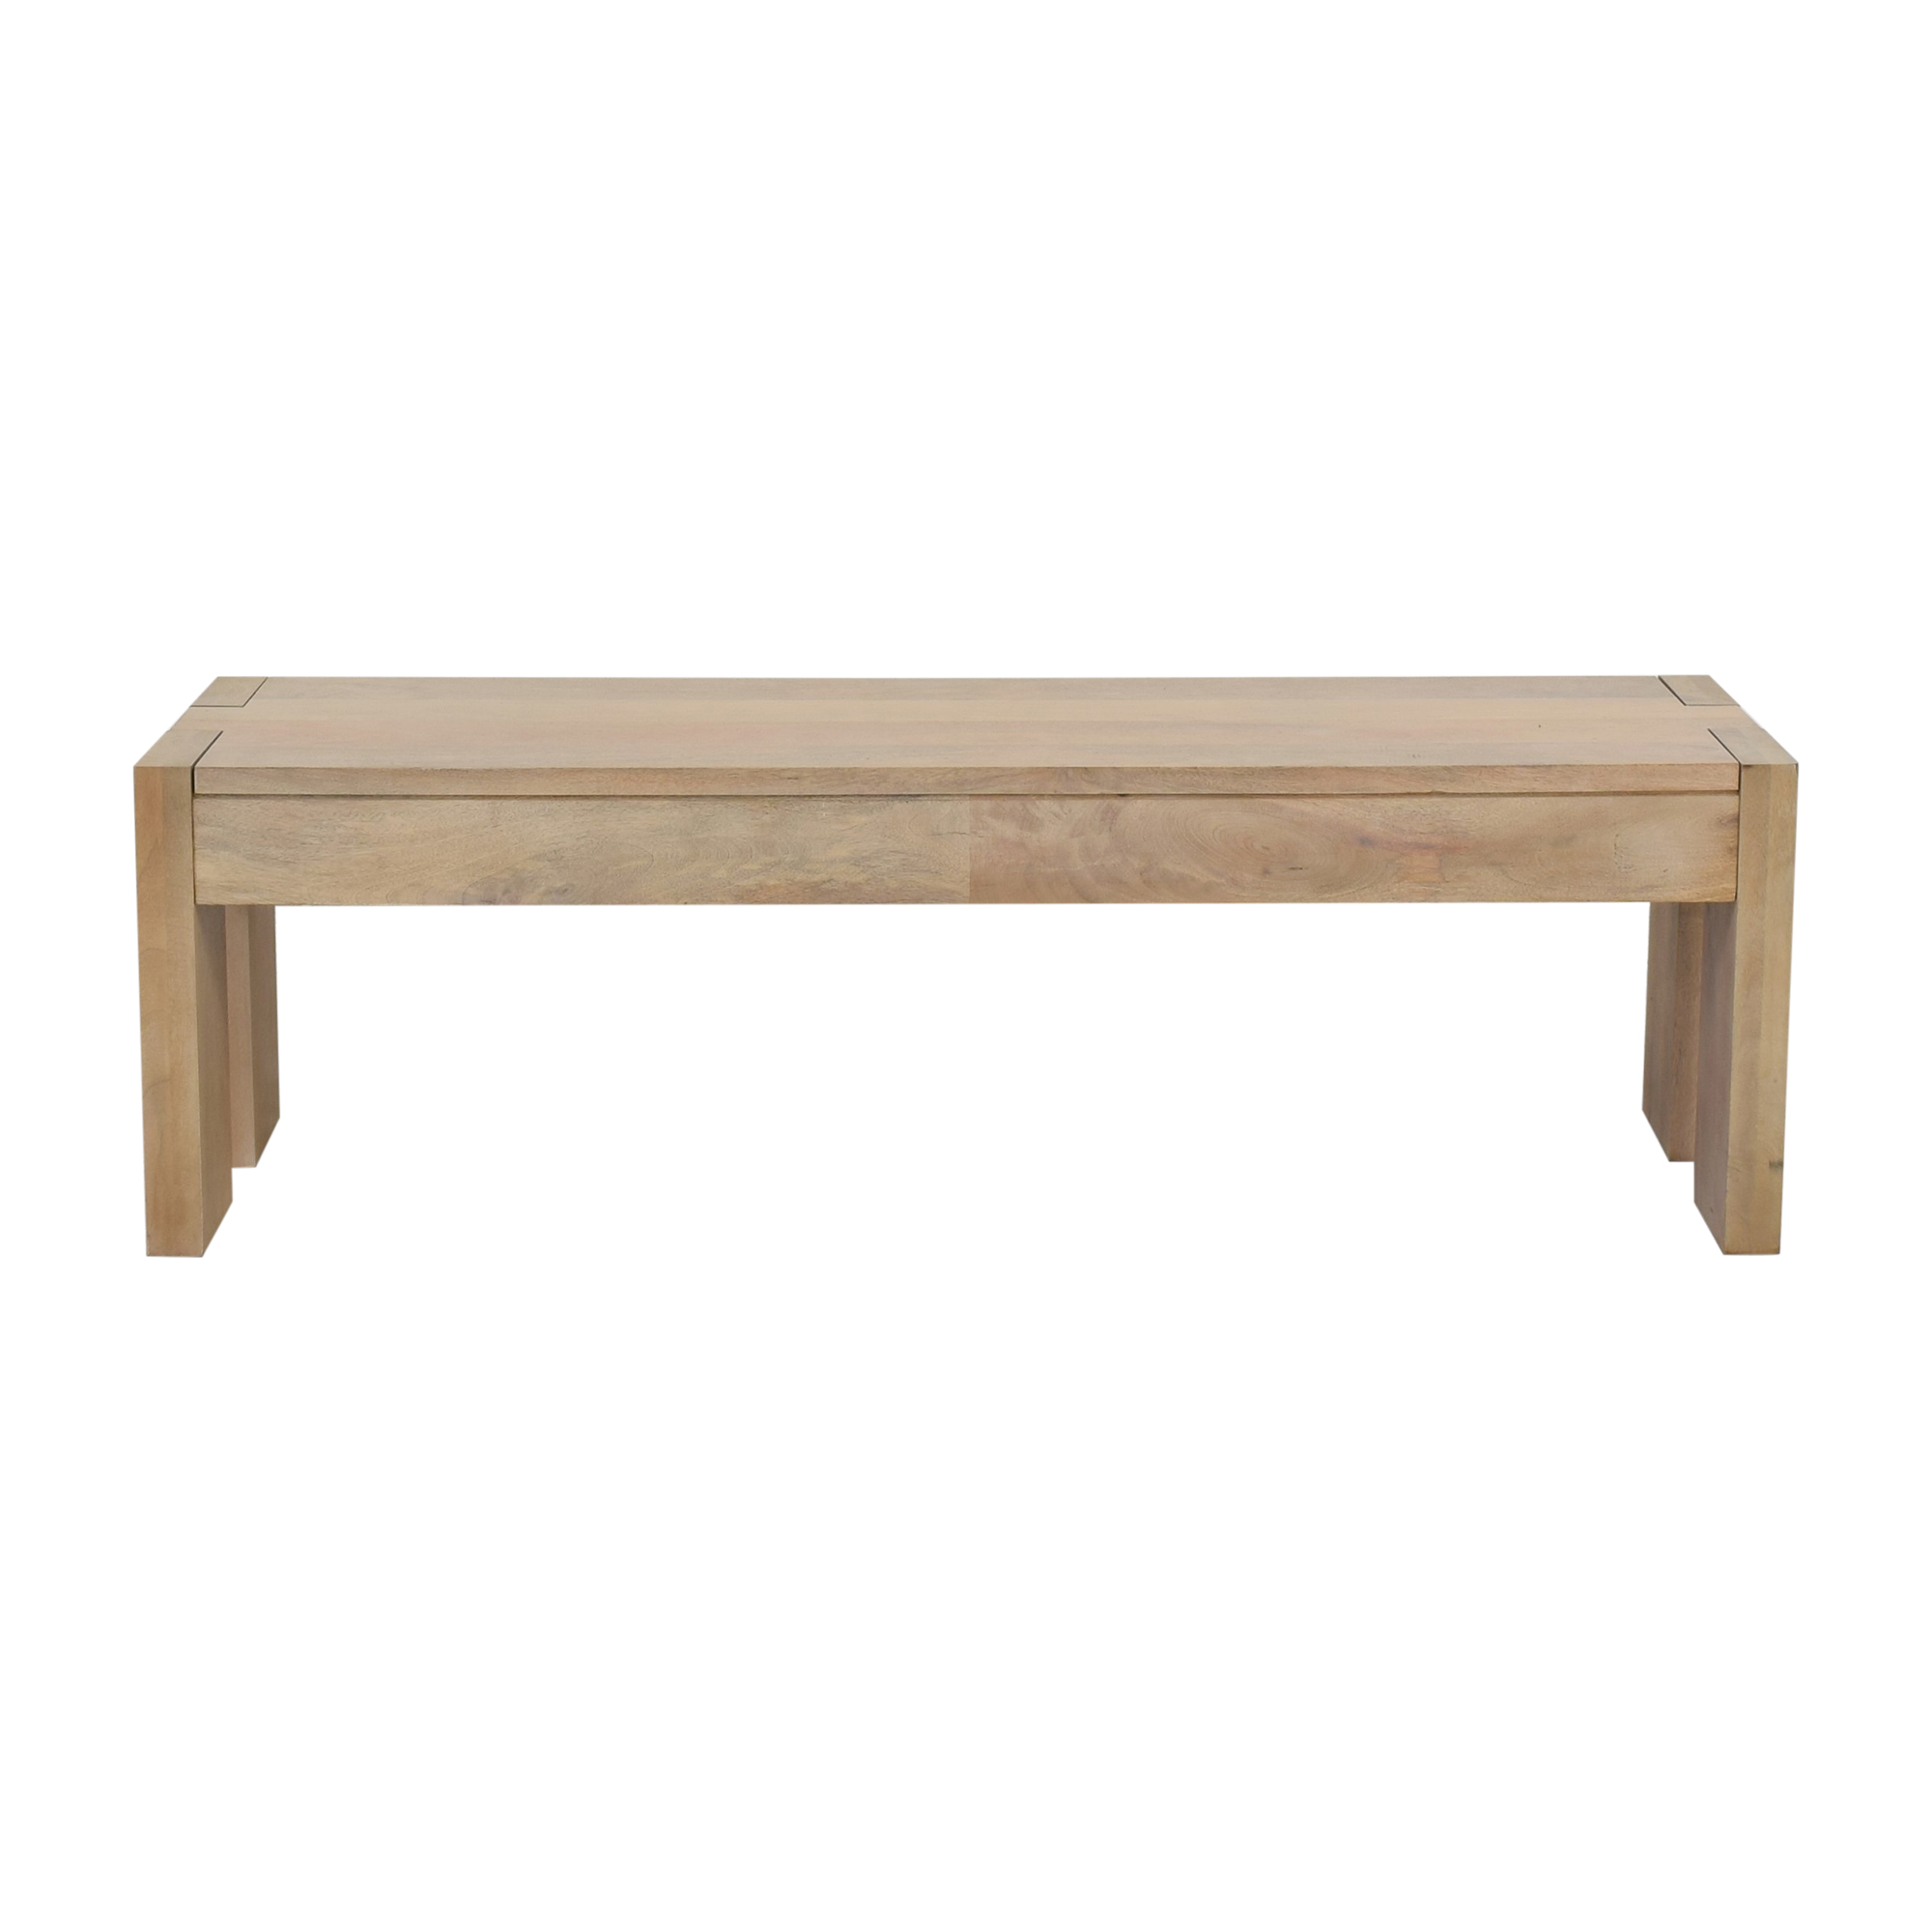 West Elm Boerum Dining Bench sale